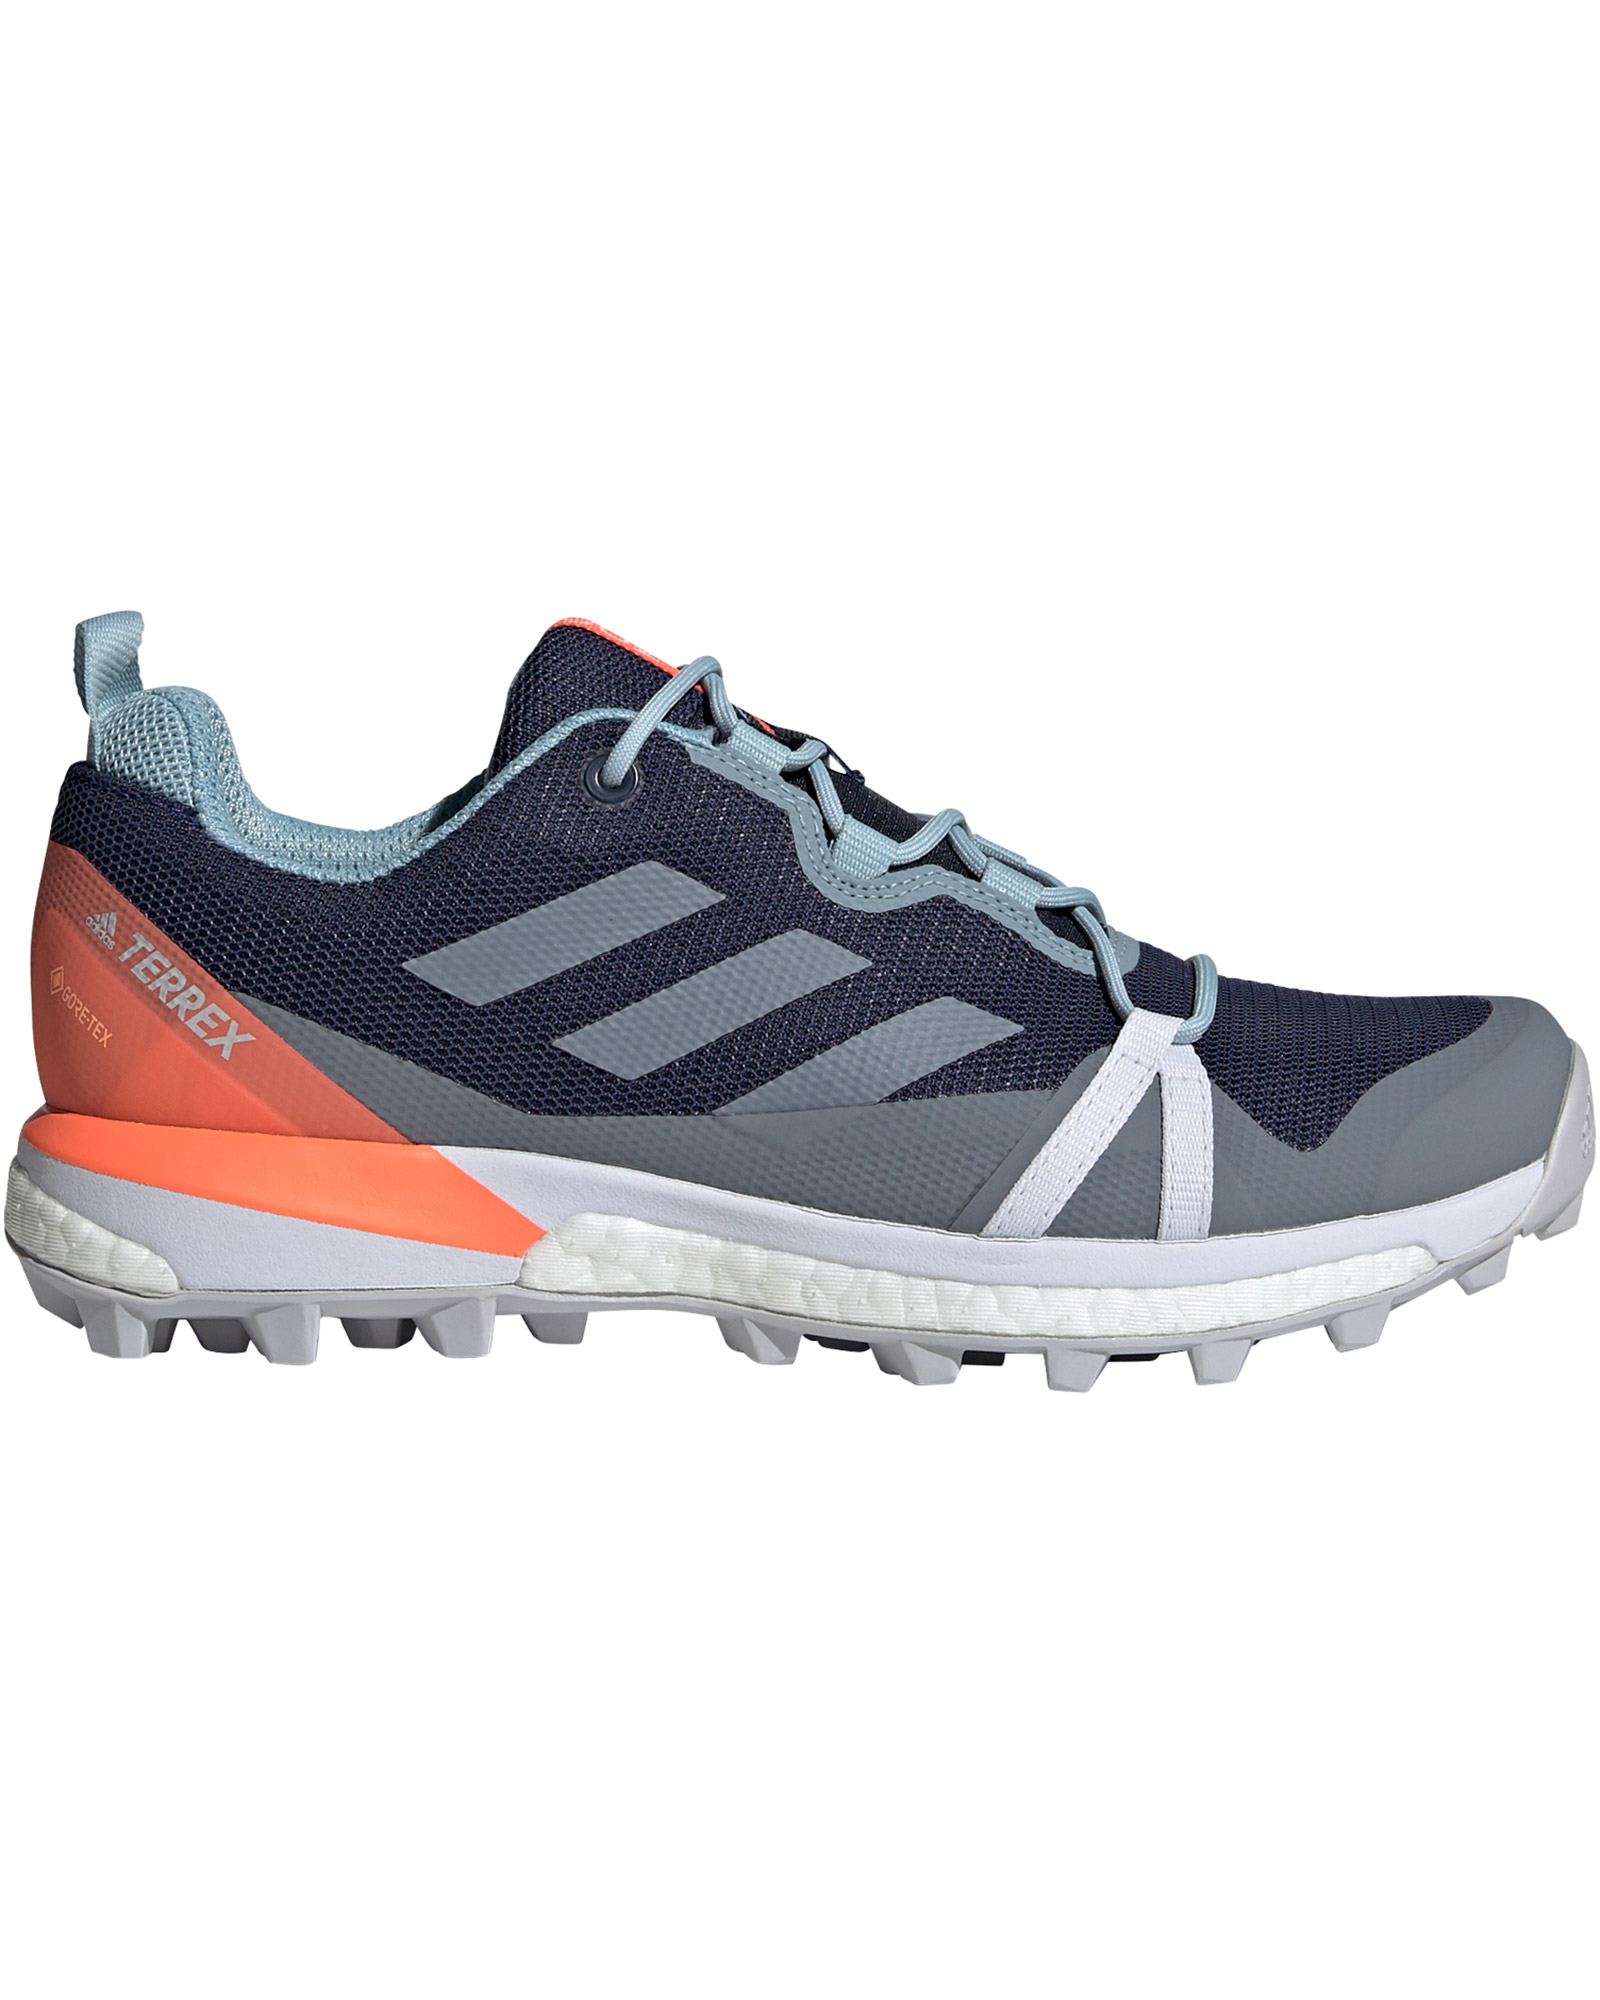 Adidas Terrex Women's Terrex Skychaser LT GORE-TEX Walking Shoes 0